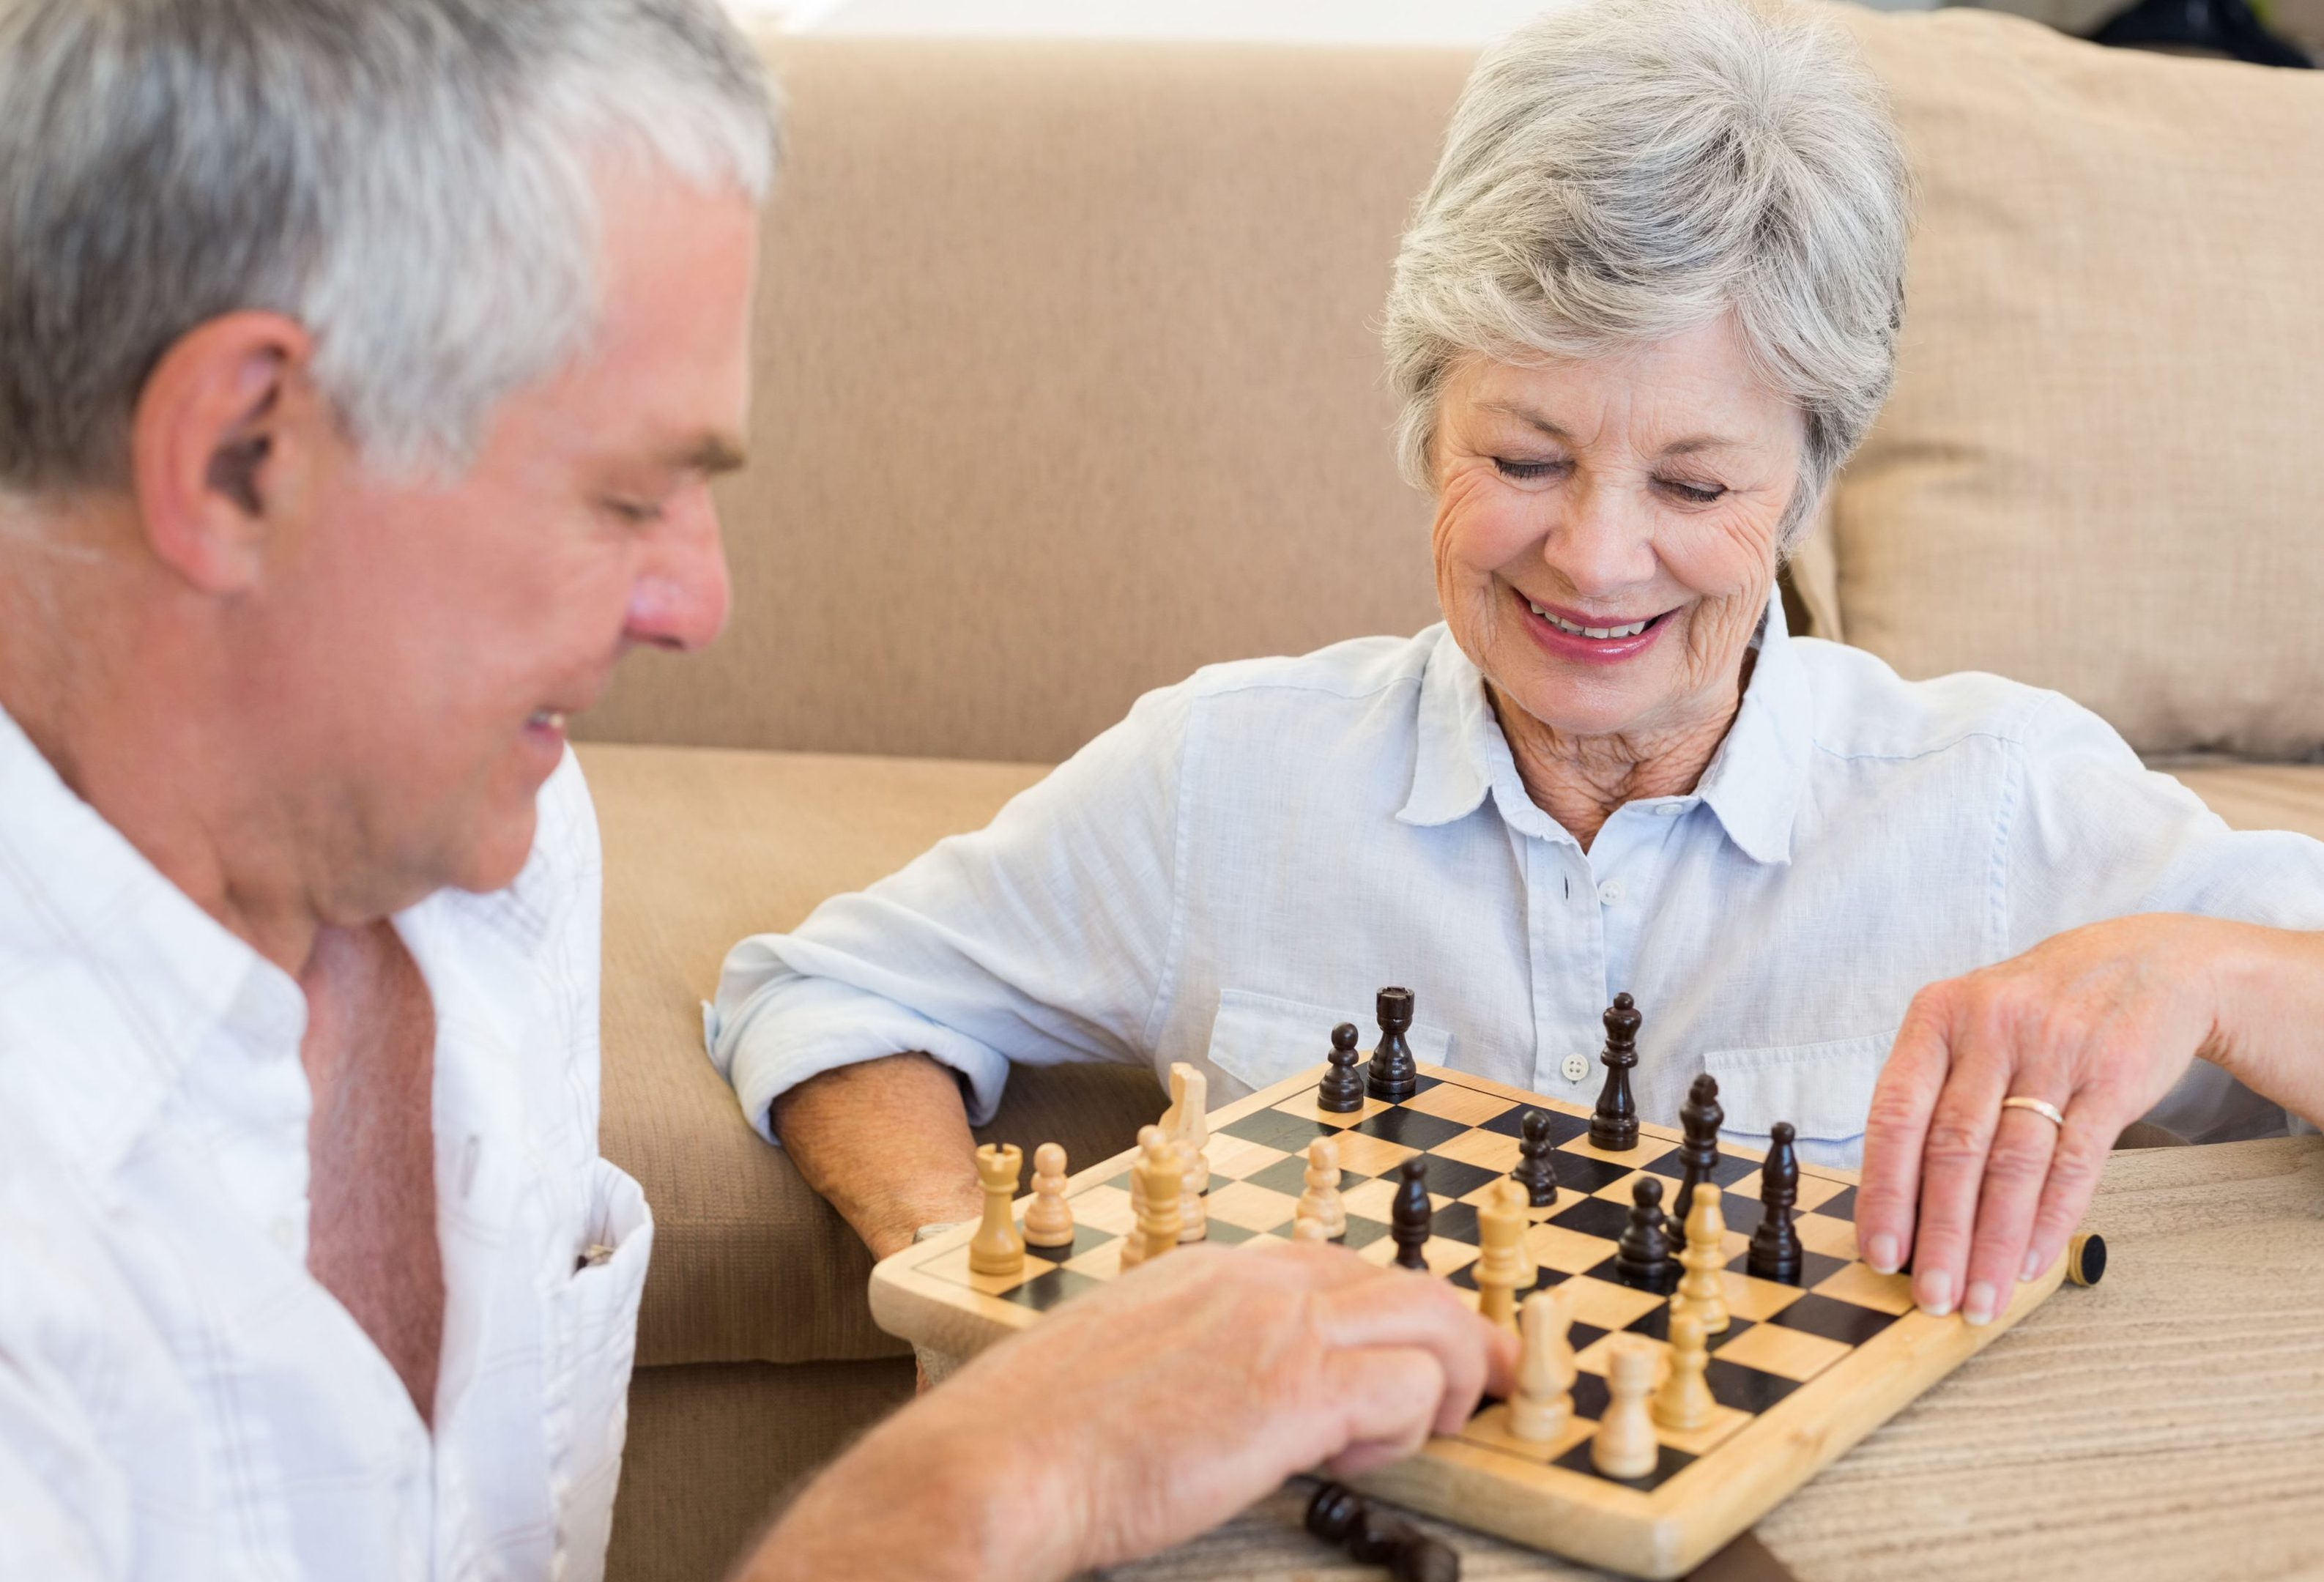 An older couple playing chess together. But what is the secret to a happy retirement?